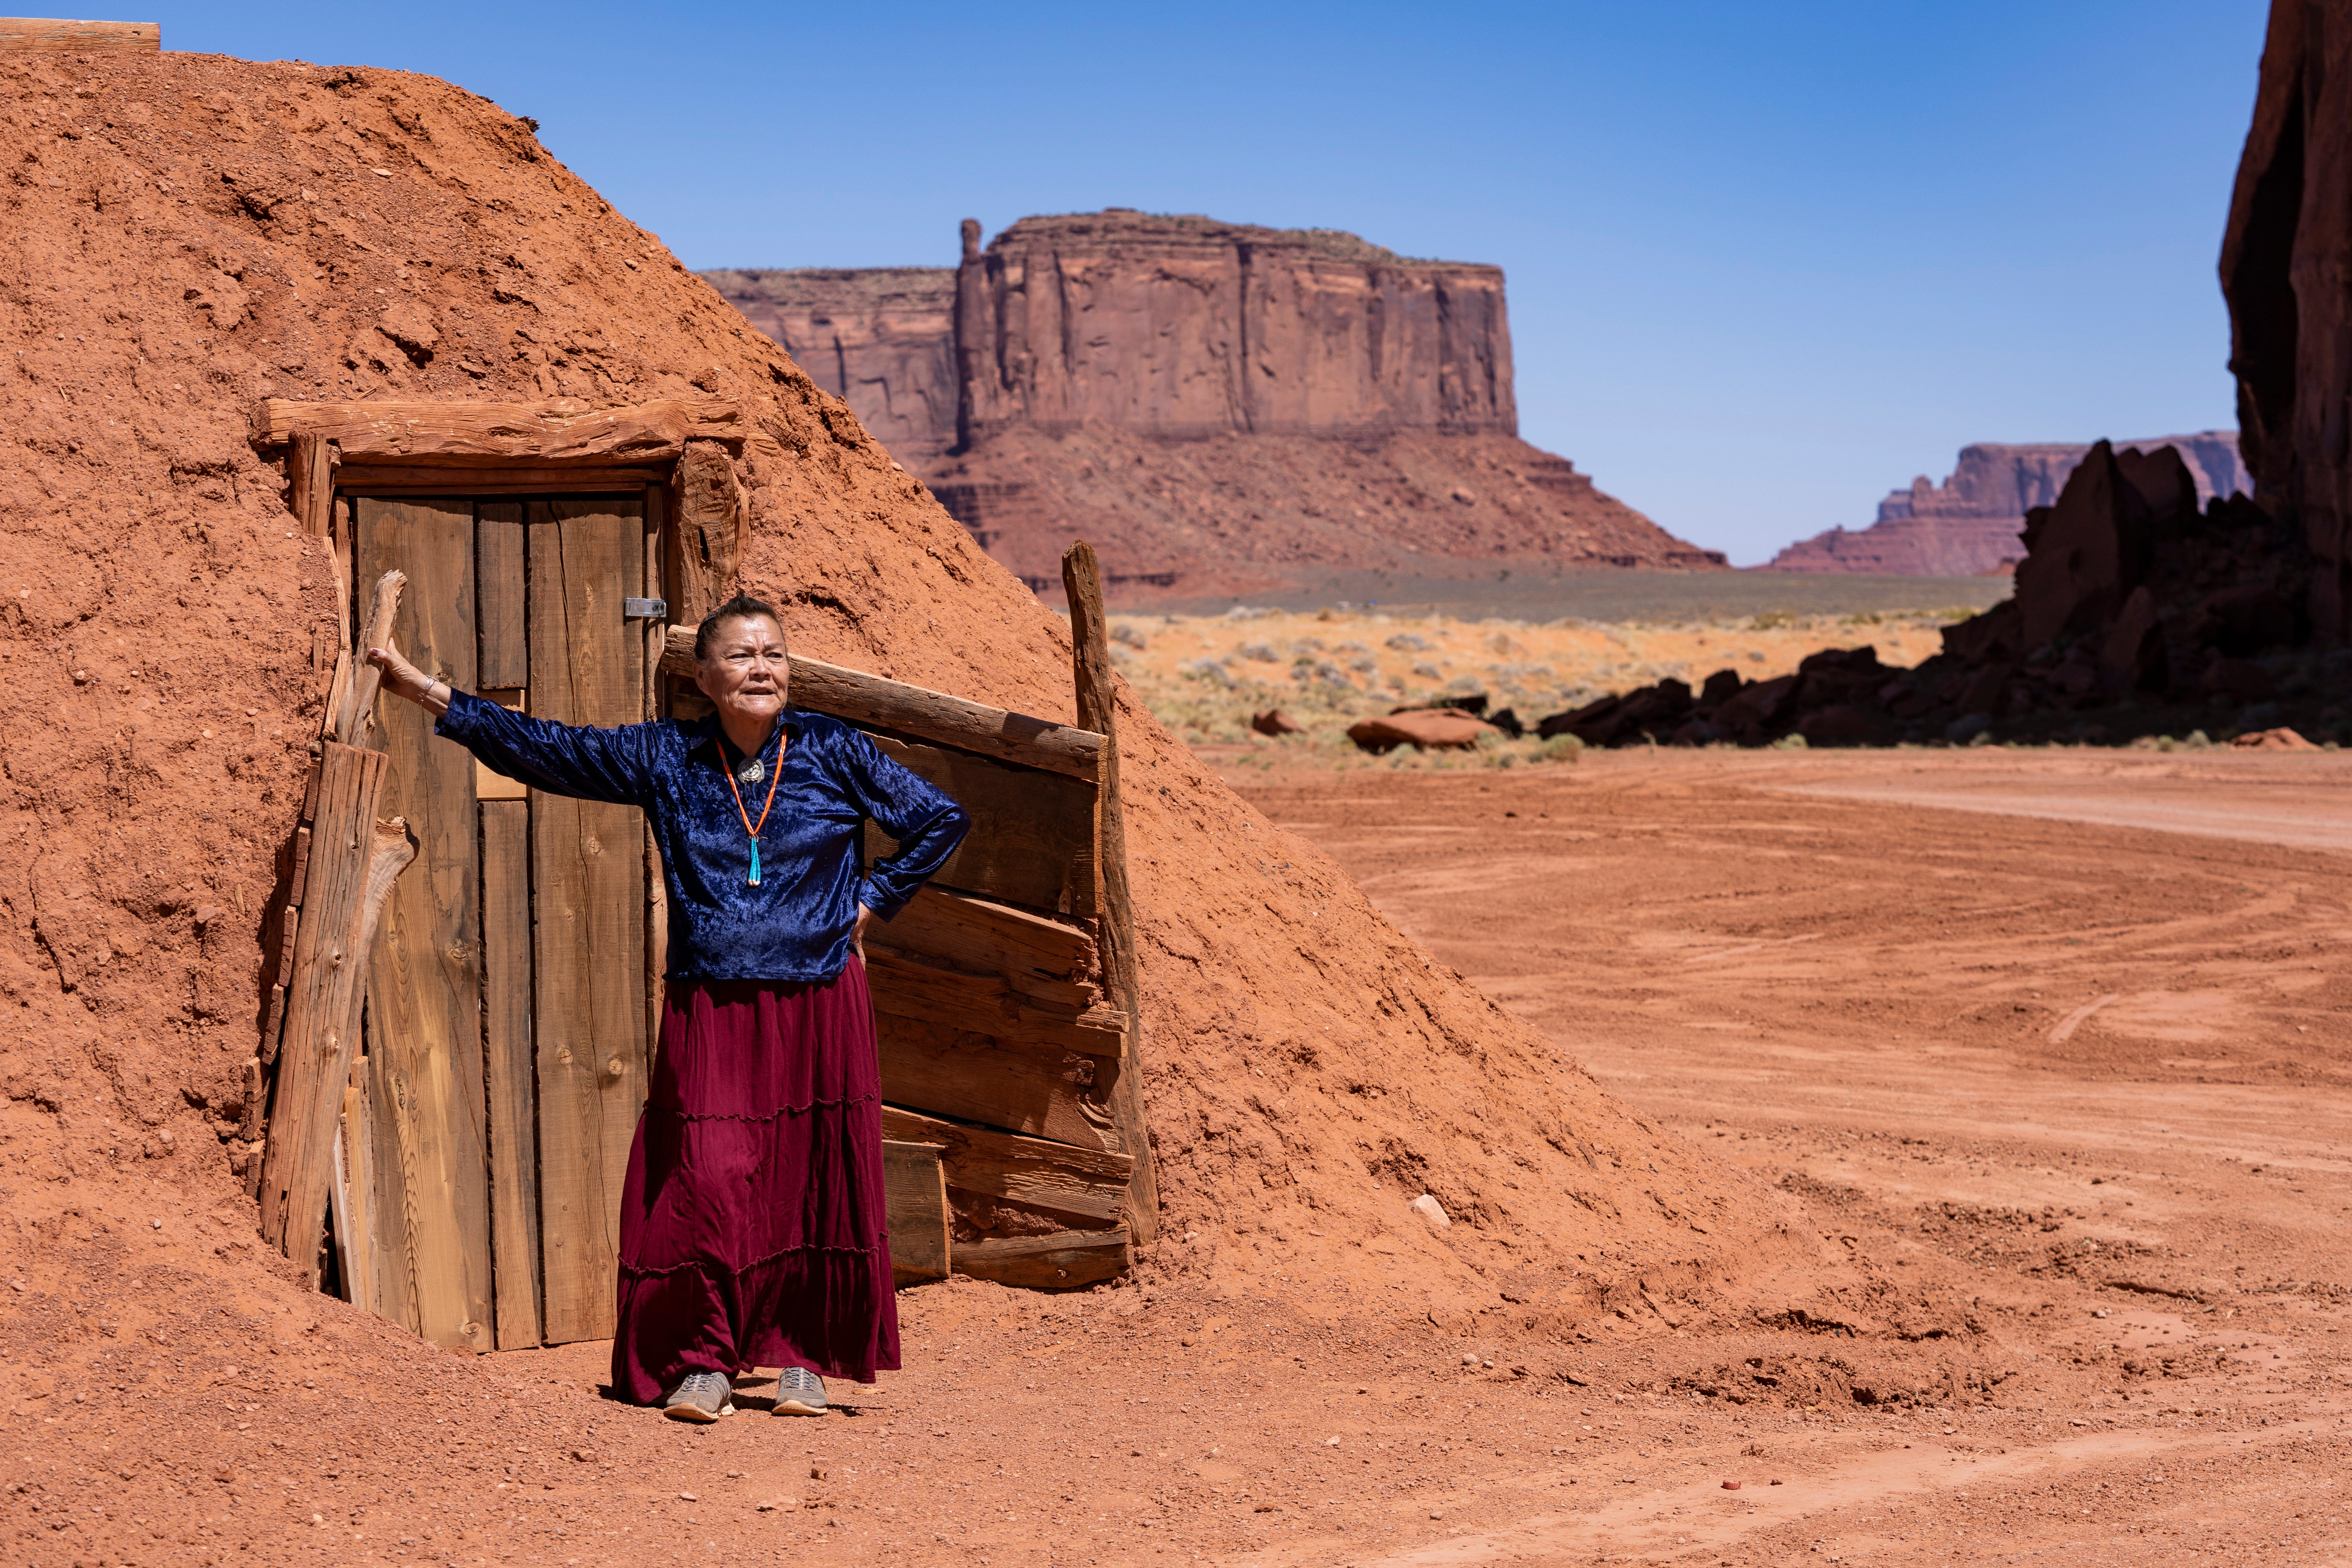 Effie Yazzie stands by a traditional hogan next to the house where she lives in Monument Valley on the Navajo Nation. She recently fell sick with COVID-19 but has since bounced back.